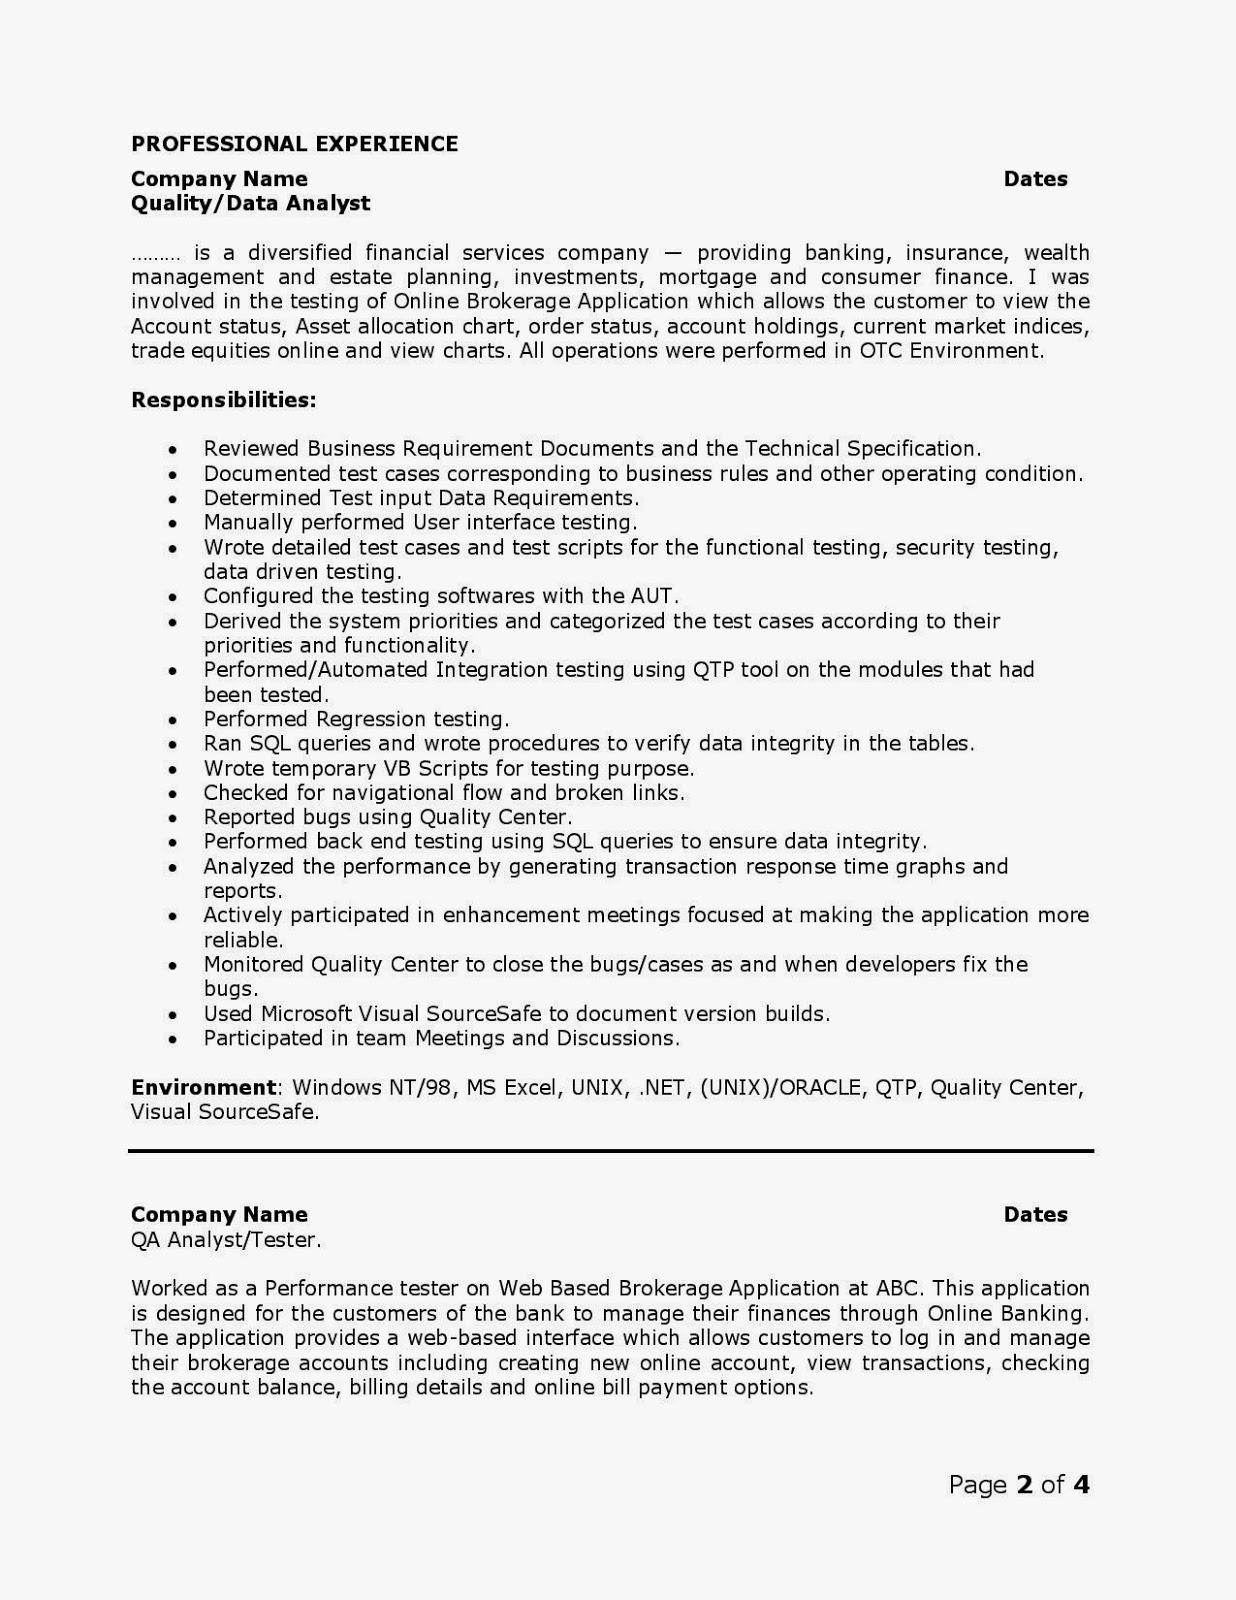 Quality Assurance Cover Letter Sample 25.04.2017